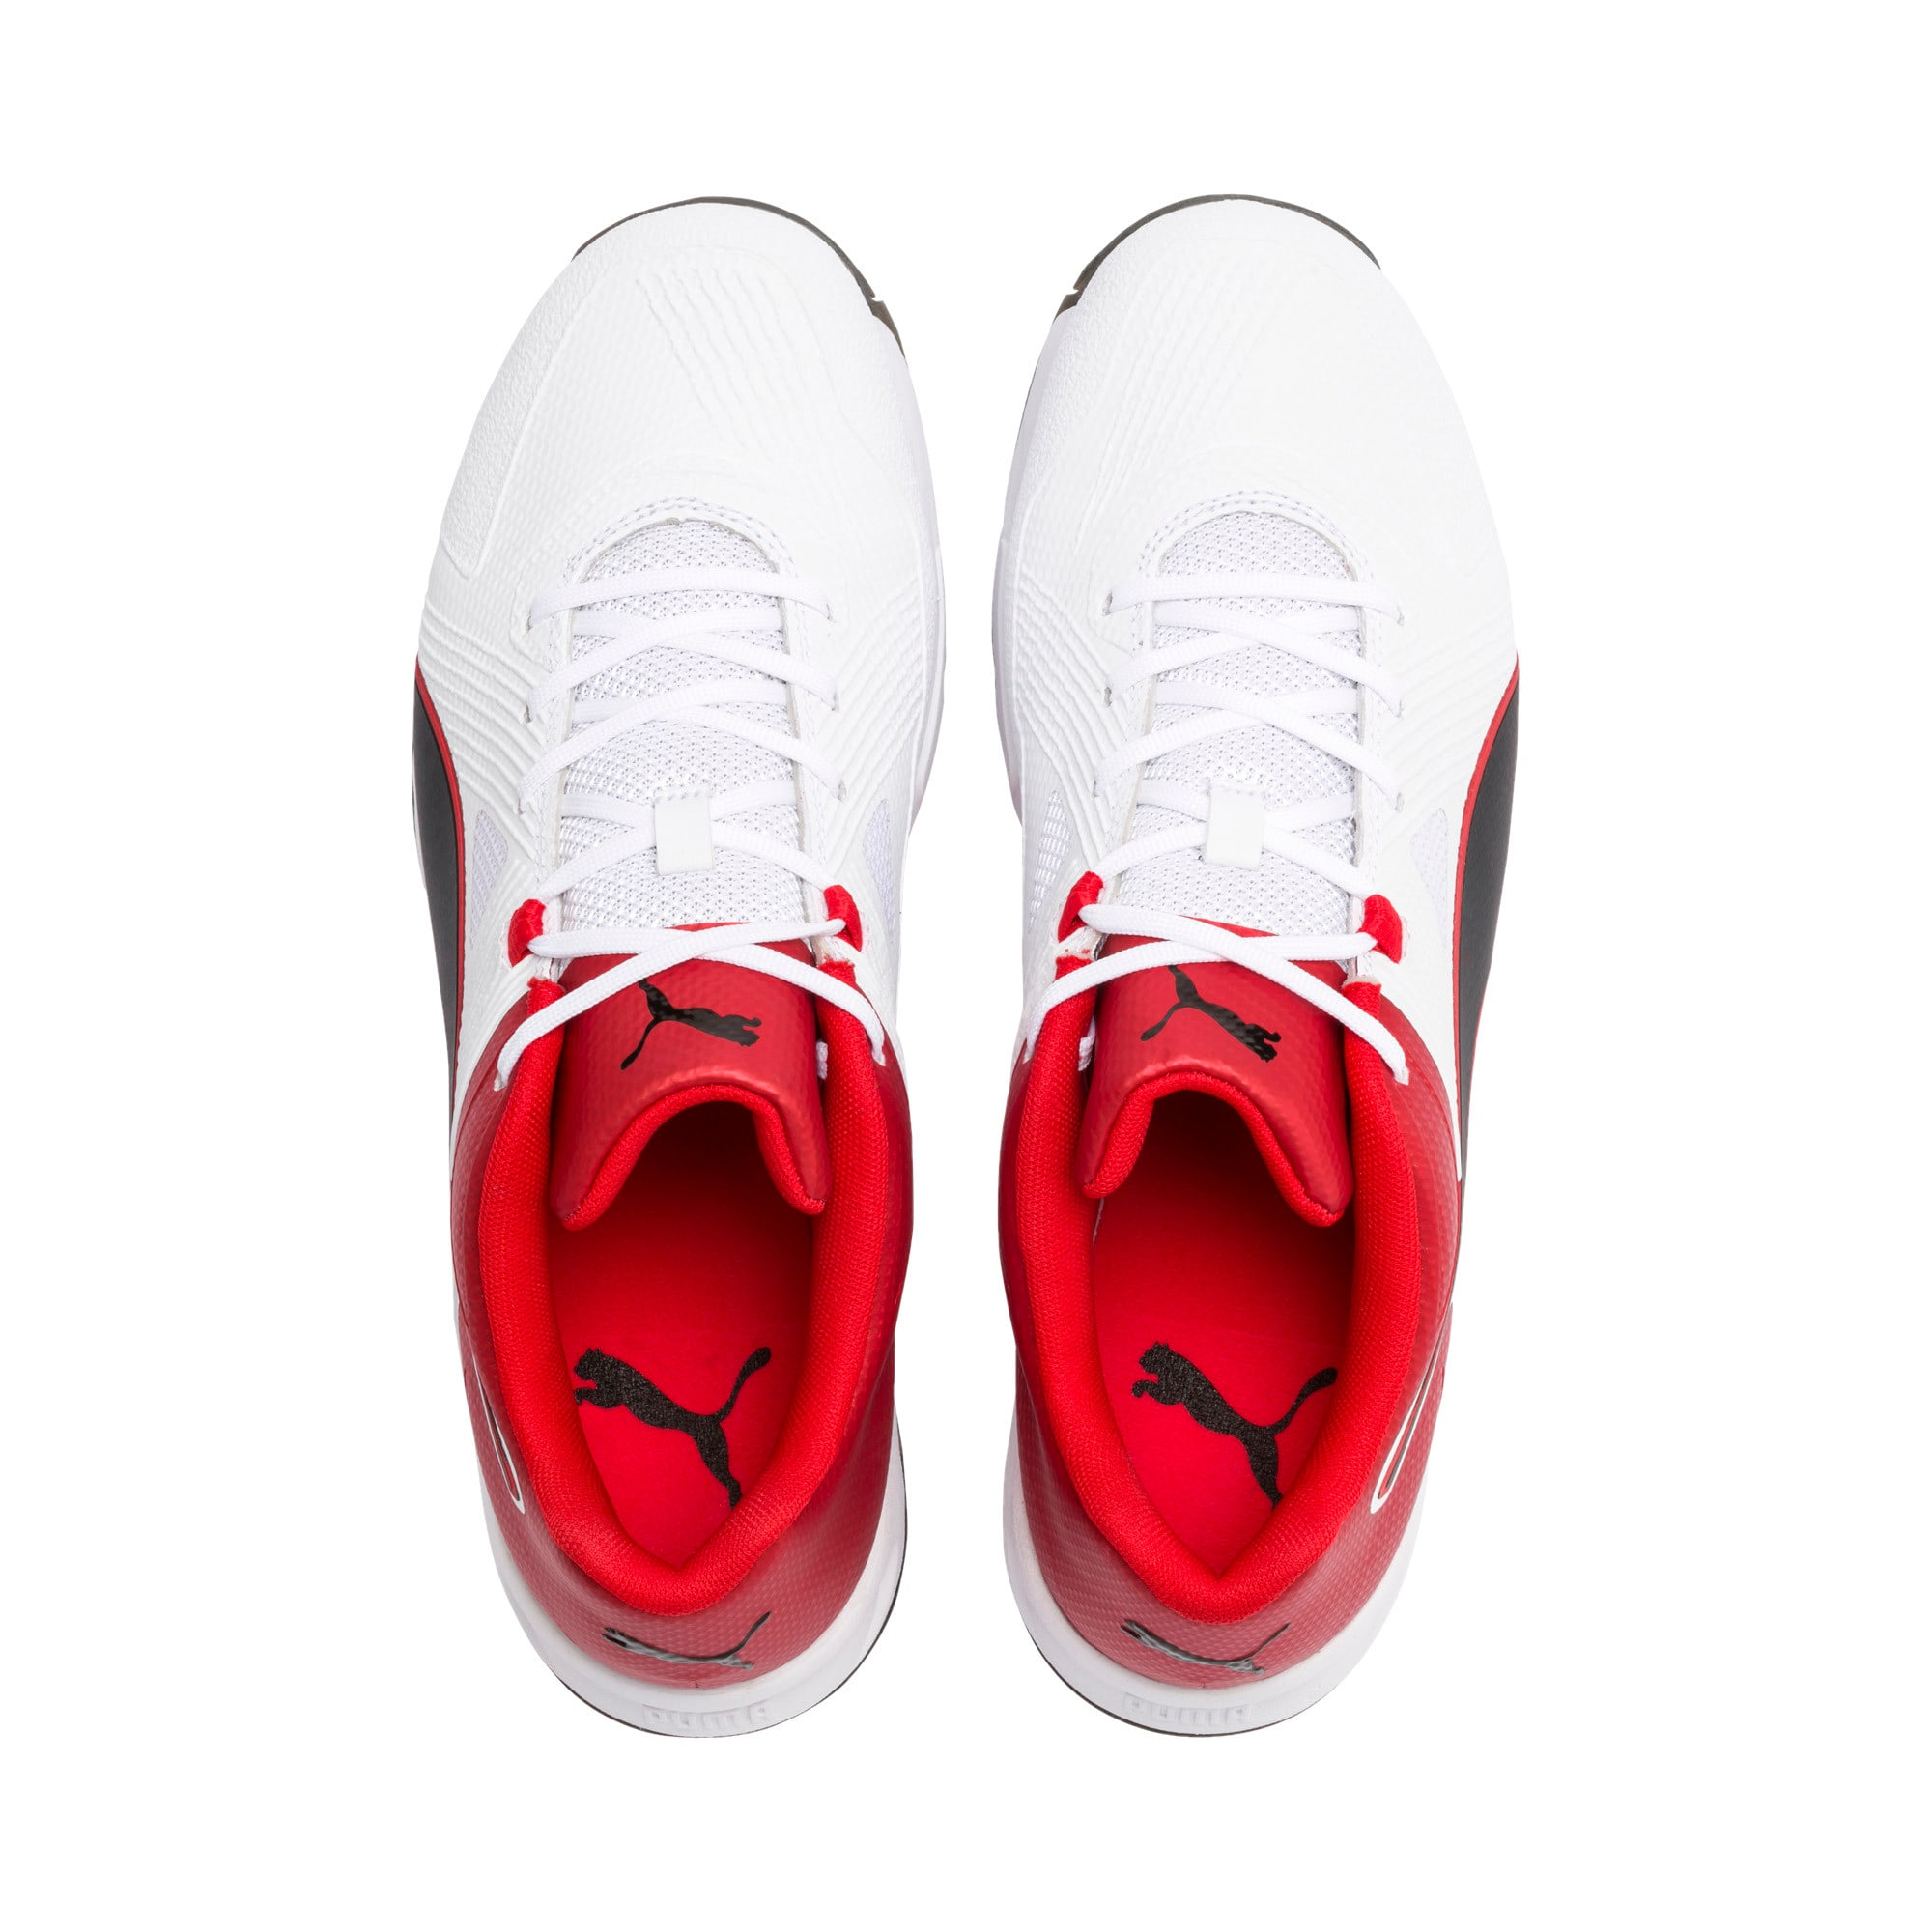 Thumbnail 6 of PUMA Spike 19.1 Men's Cricket Shoes, White-Black-High Risk Red, medium-IND